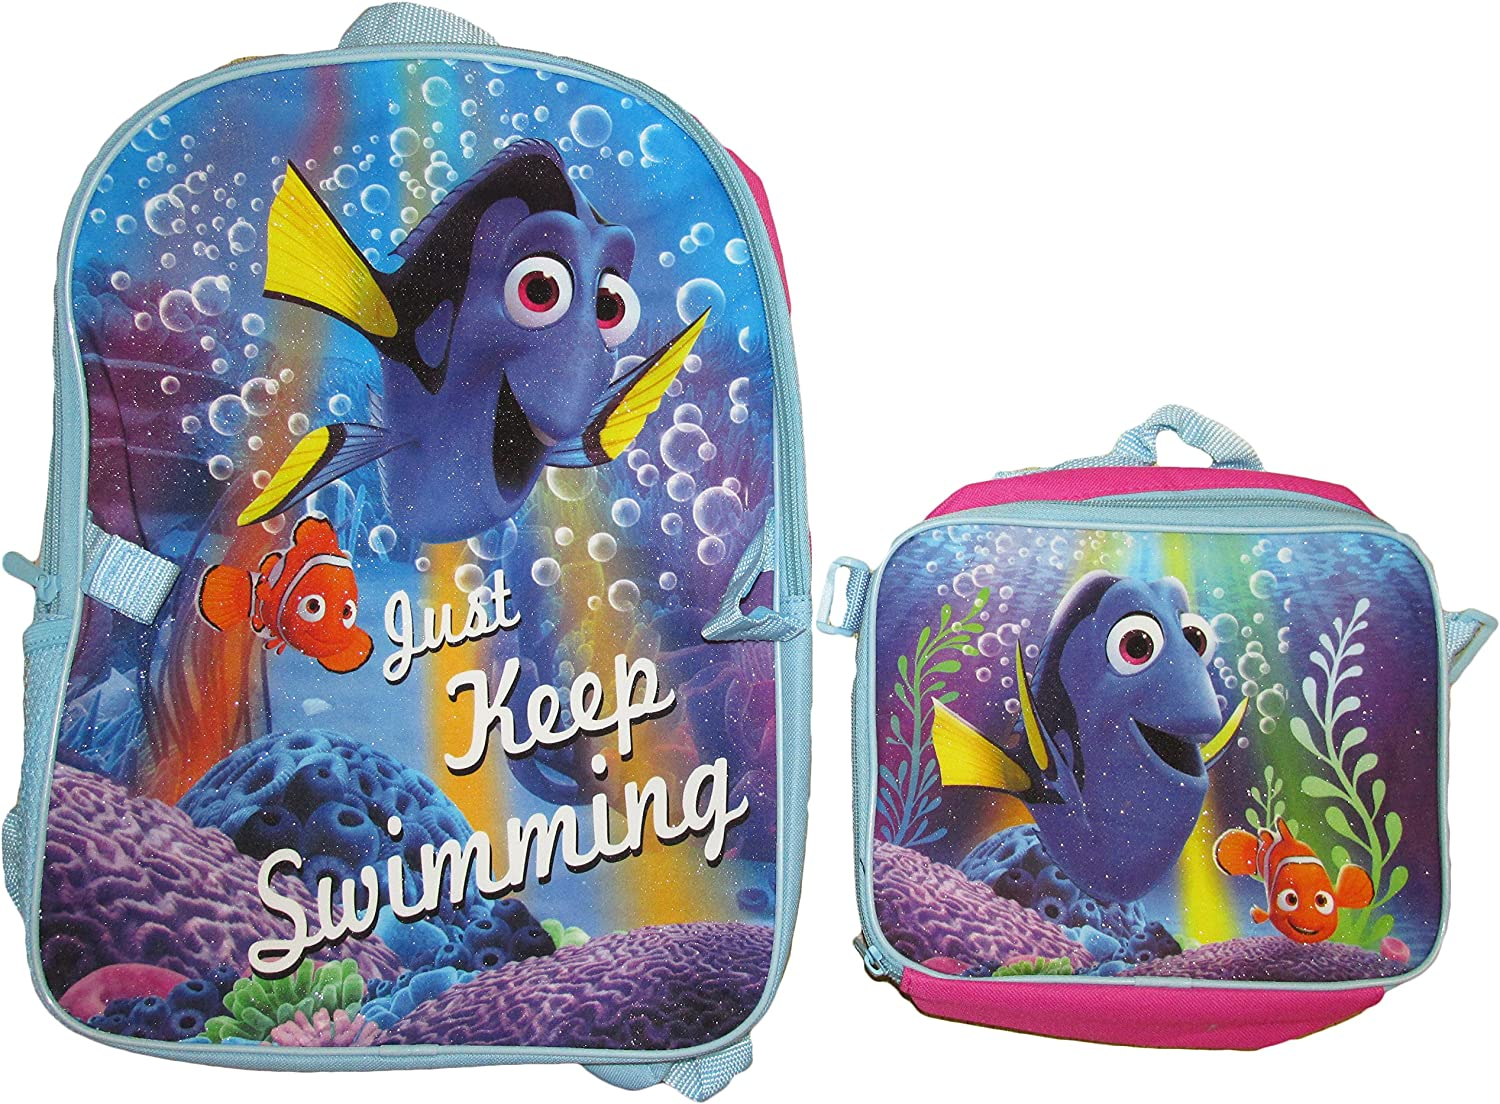 Disney Pixar Finding Dory Backpack with Lunch Bag Set (Light bluee Fuchsia)